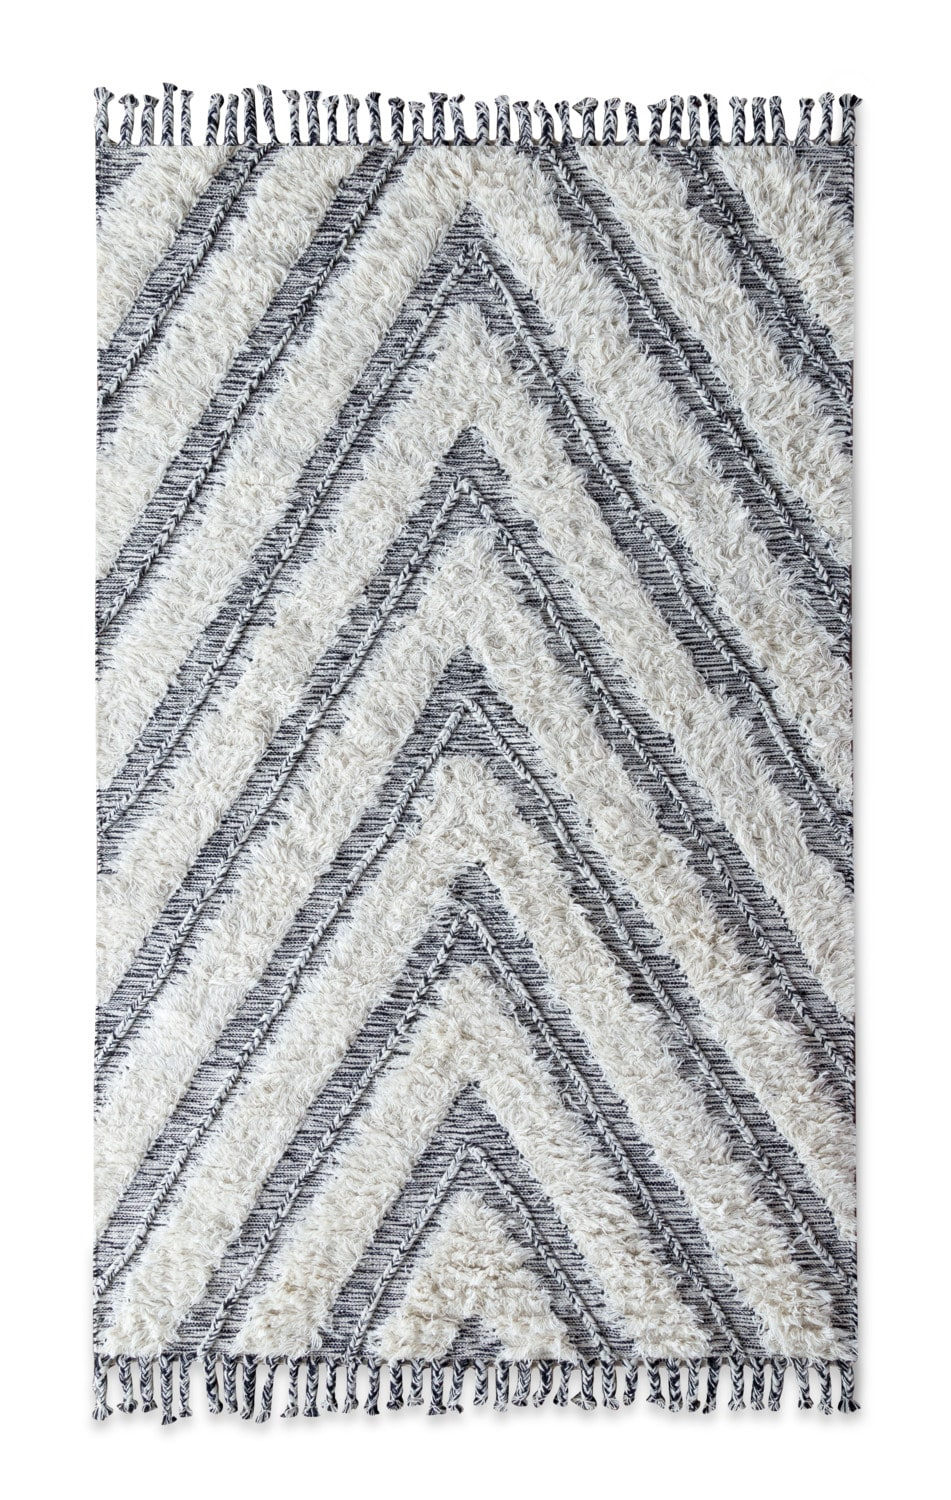 Rugs - Estes Shag 8' x 10' Area Rug - Ivory and Black